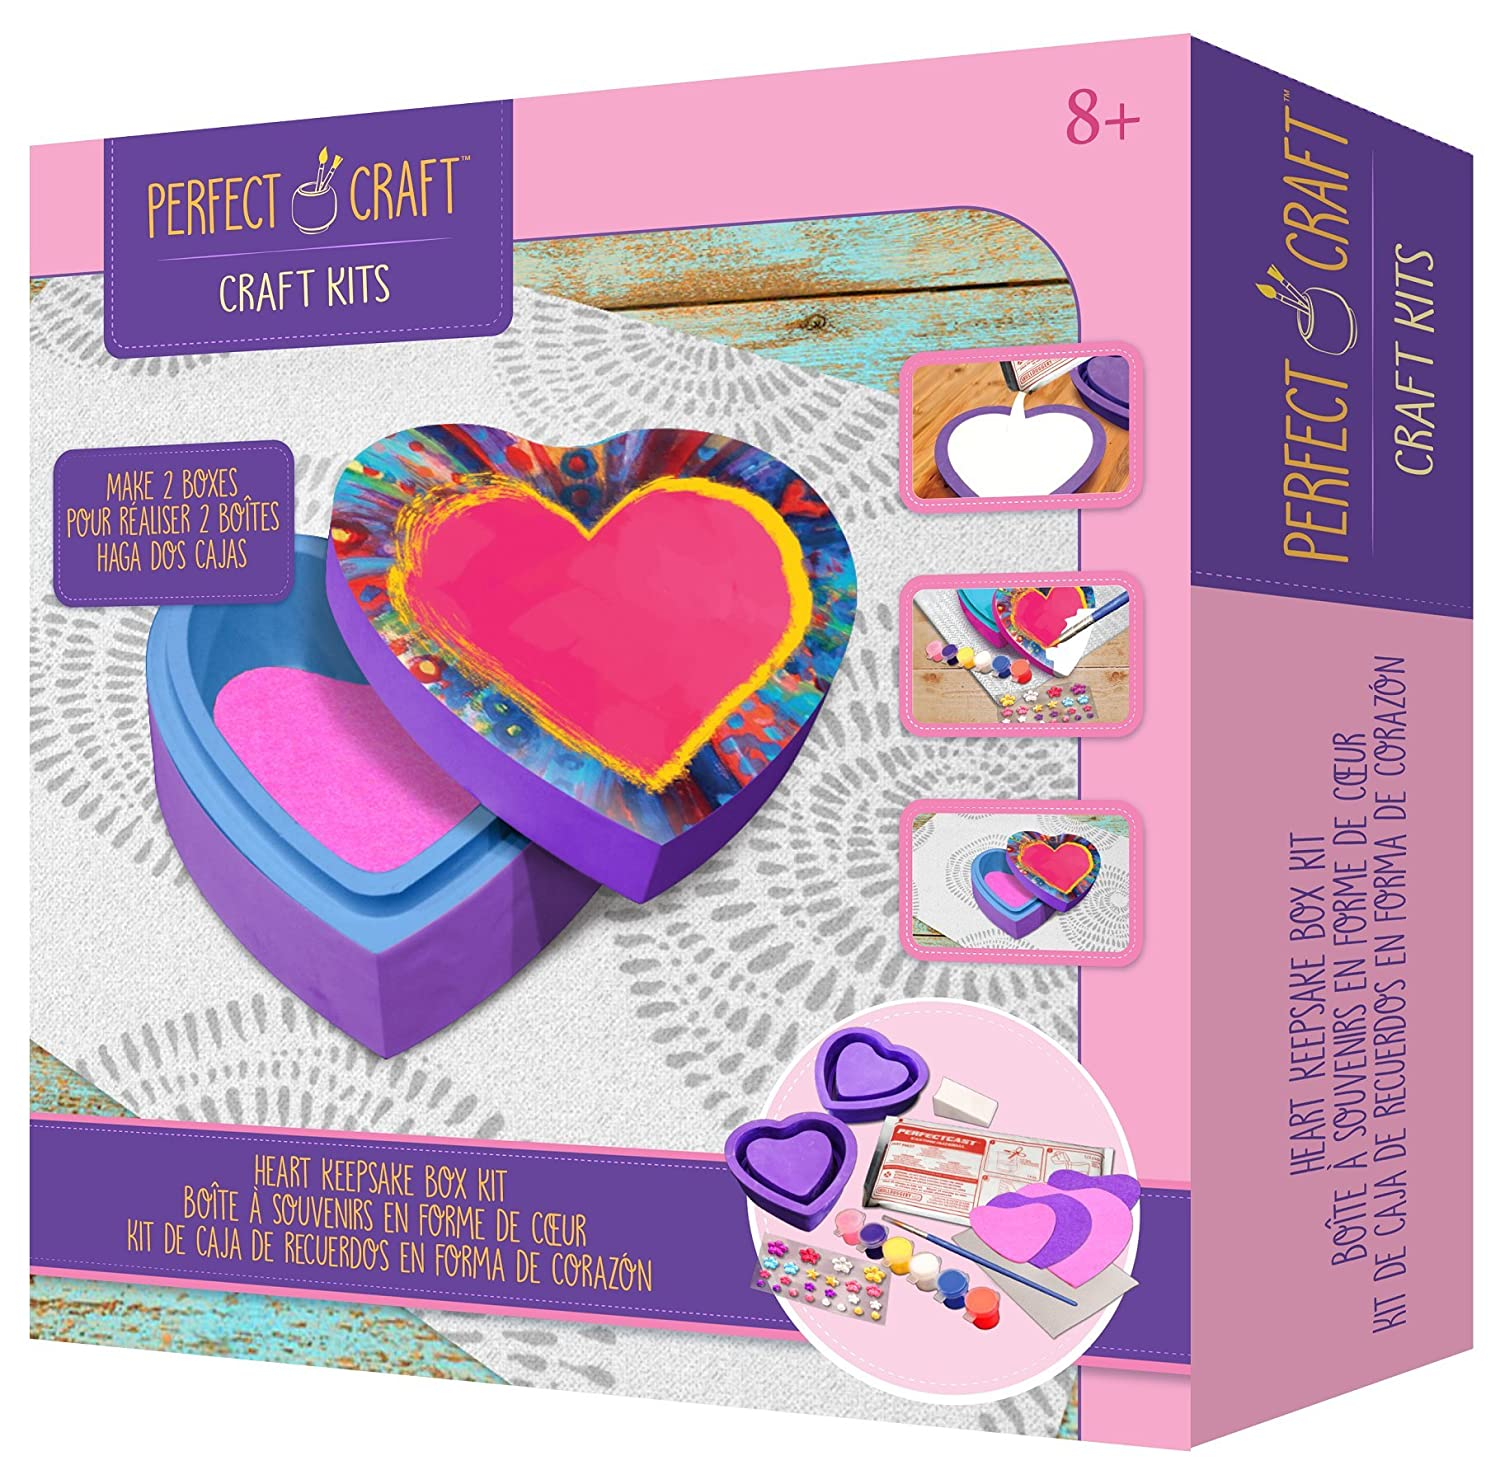 Amazon.com: Skullduggery Perfect Craft Cast & Paint Valentine Heart Box Kit with Perfect Cast Casting Material and Reusable Mold: Toys & Games